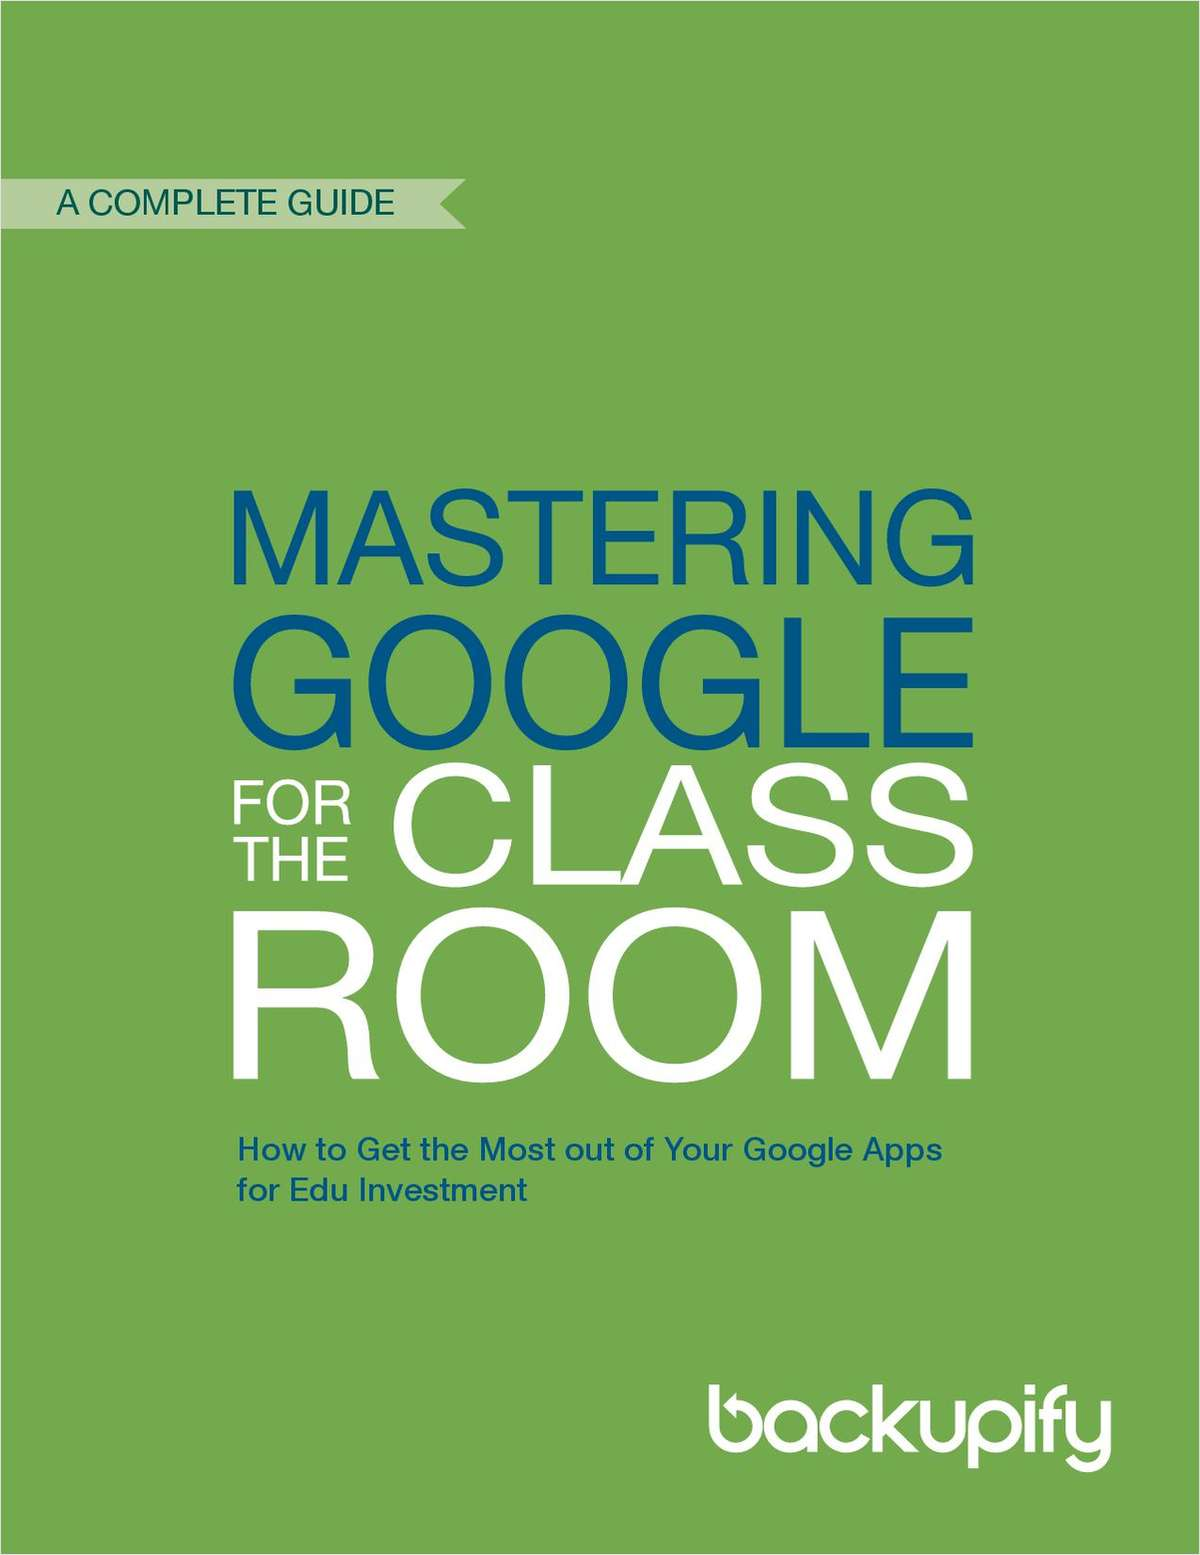 Mastering Google Apps in the Classroom